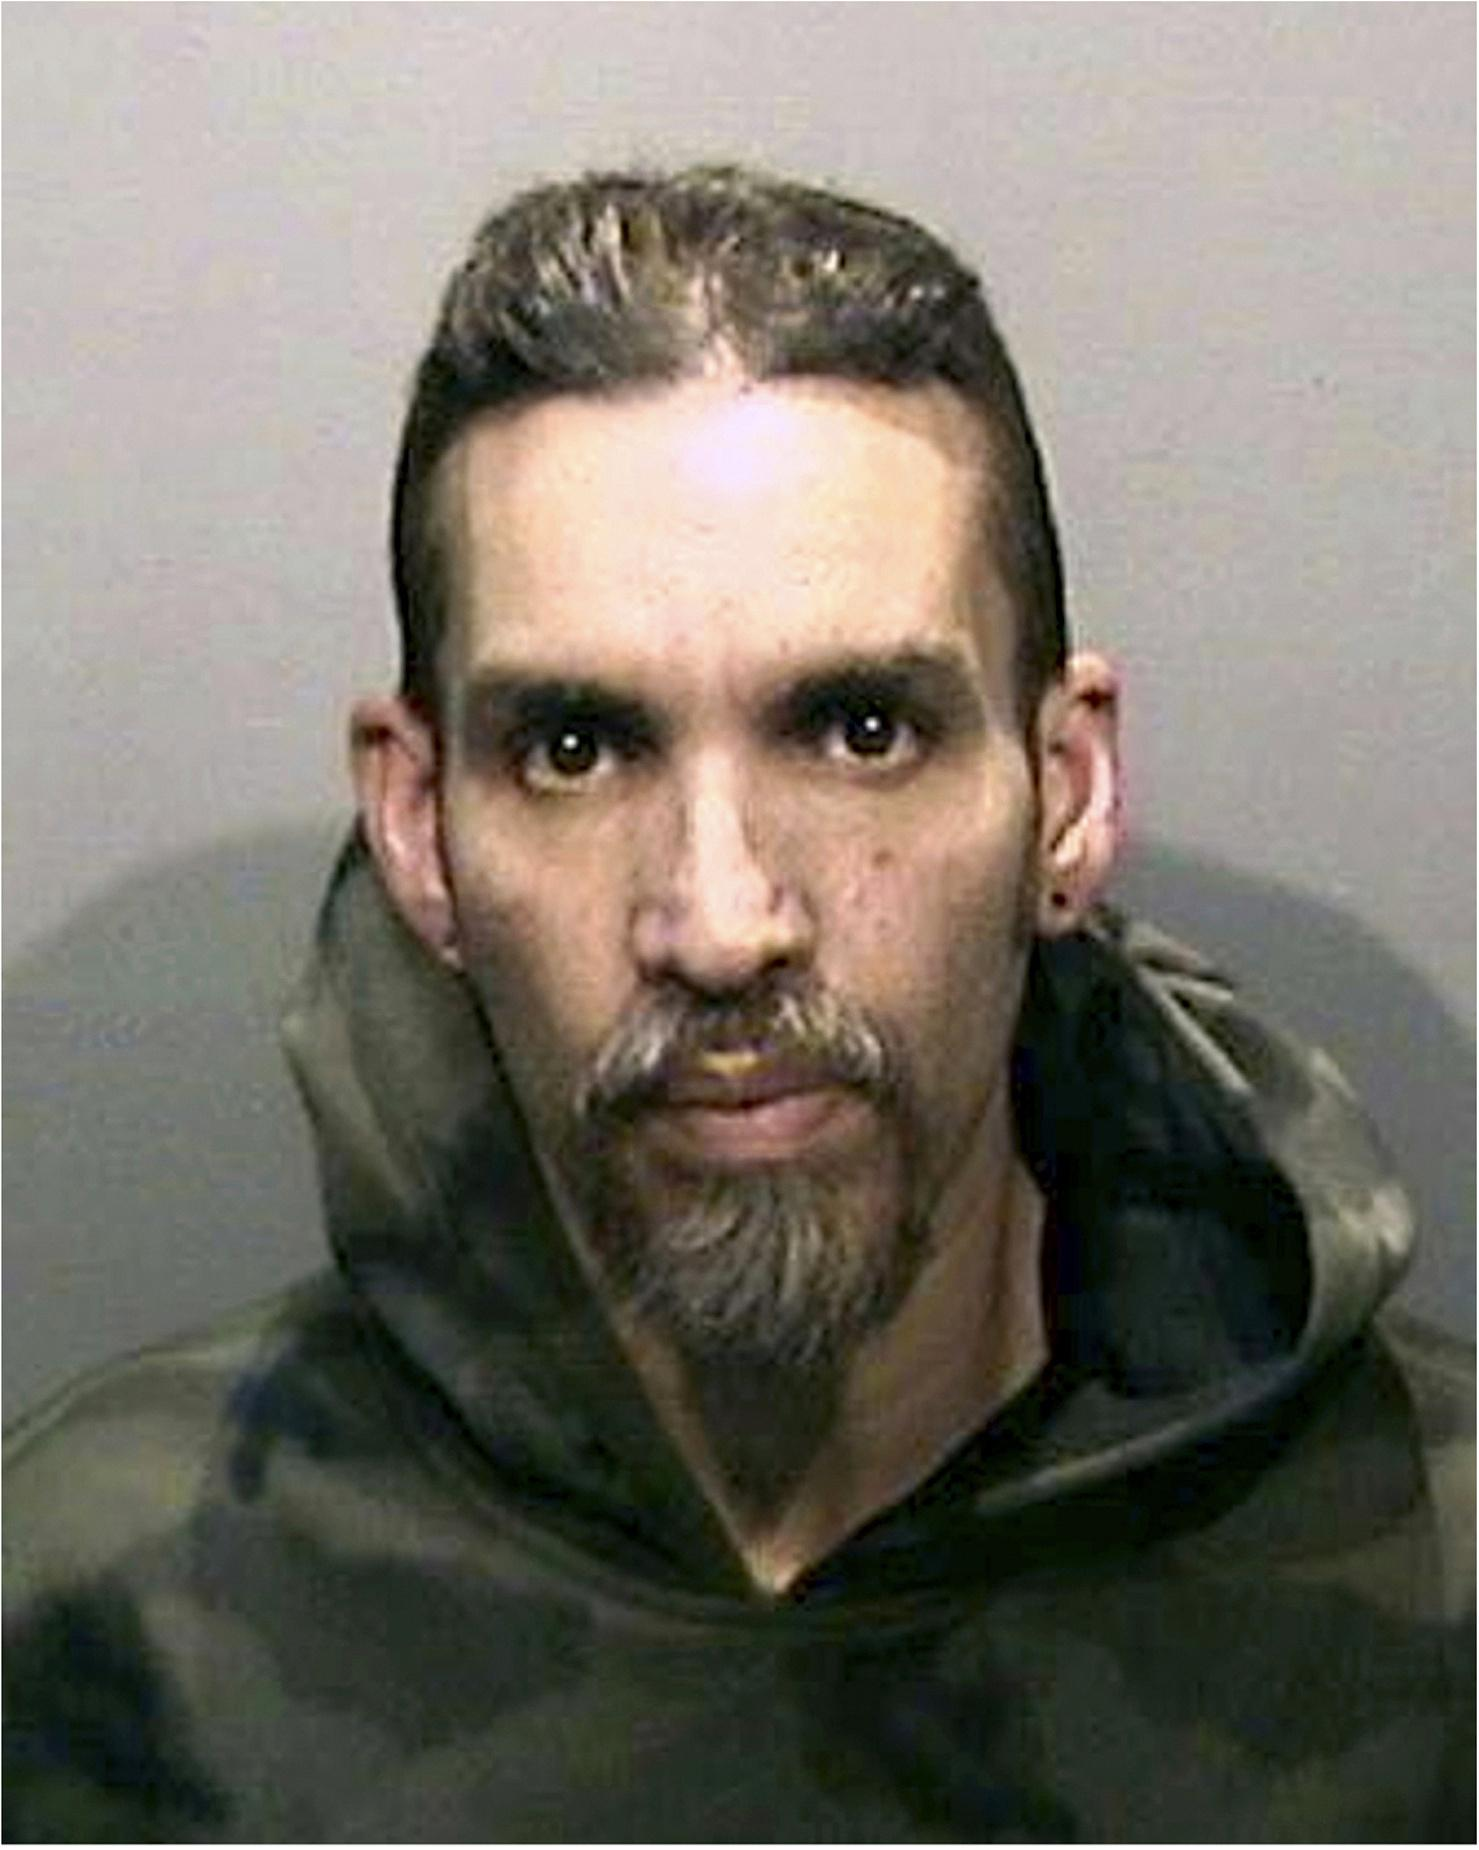 Oakland warehouse fire: Derick Almena to be retried on manslaughter charges